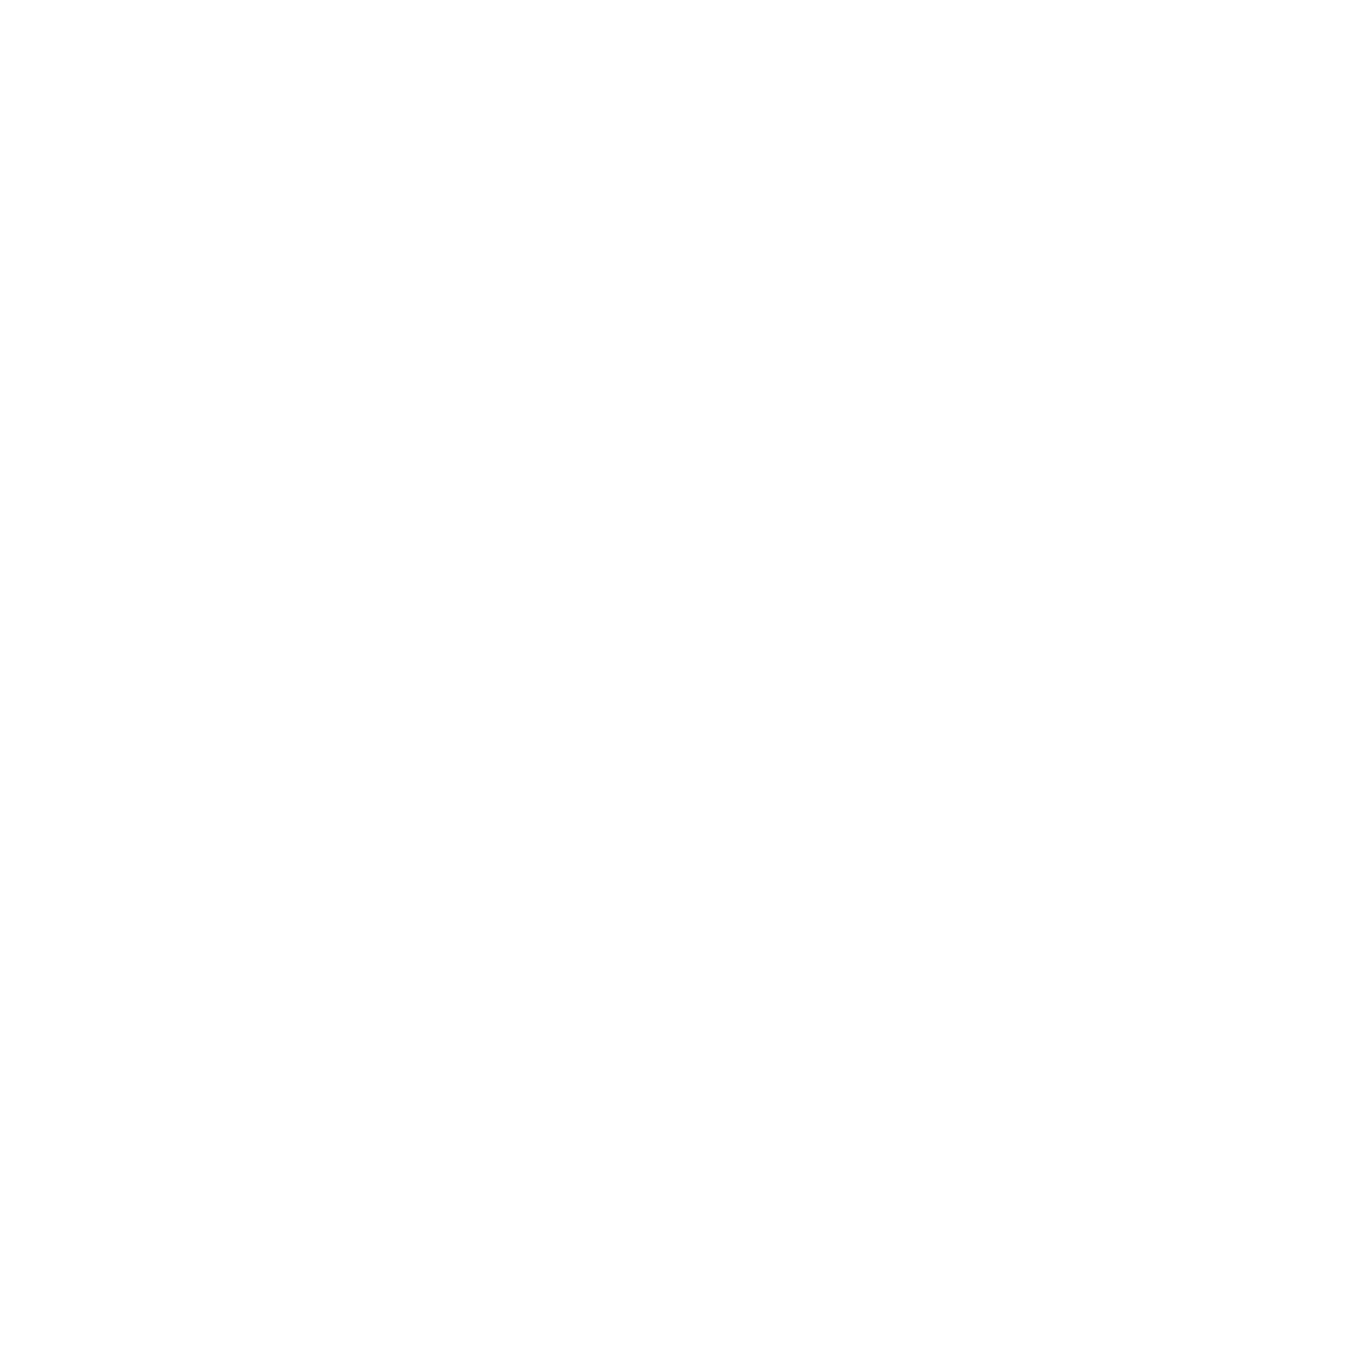 Sygmatic Feature - Spoken Sound - Personality-focused language learning for intermediate and advanced students specialized in natural communication & cultural fluency